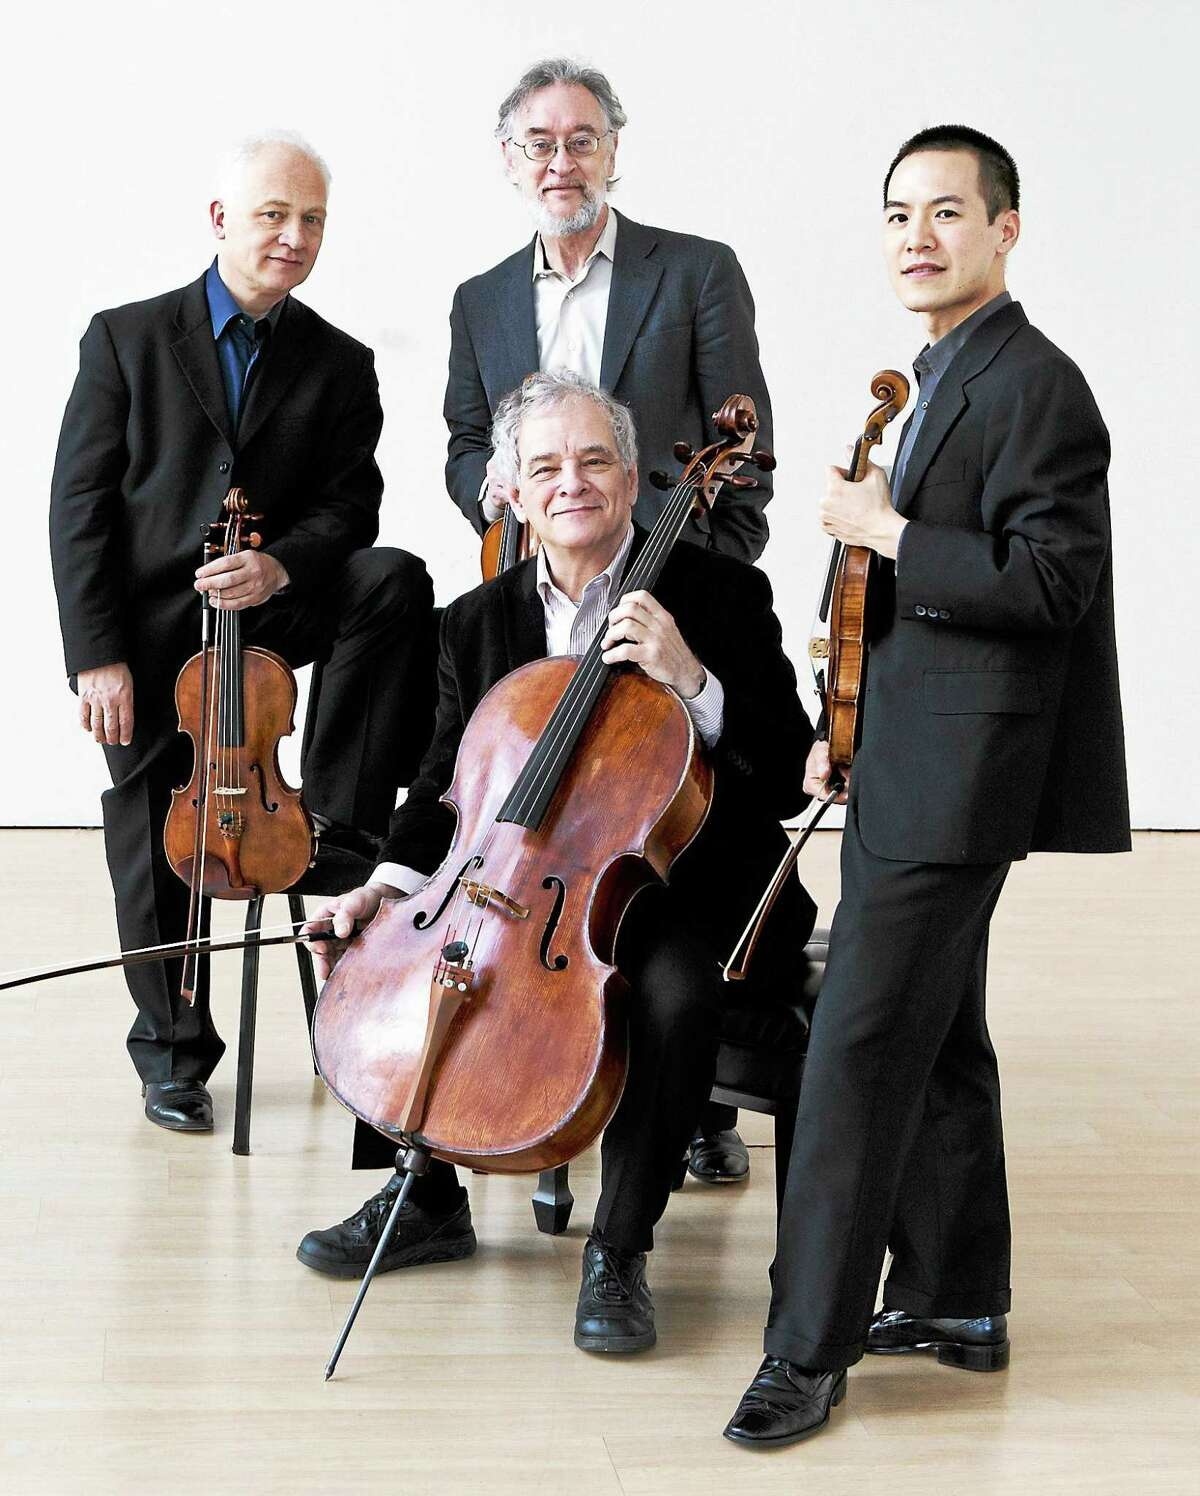 Contributed photoThe Juilliard String Quartet performs the first concert of the Essex Winter Series.